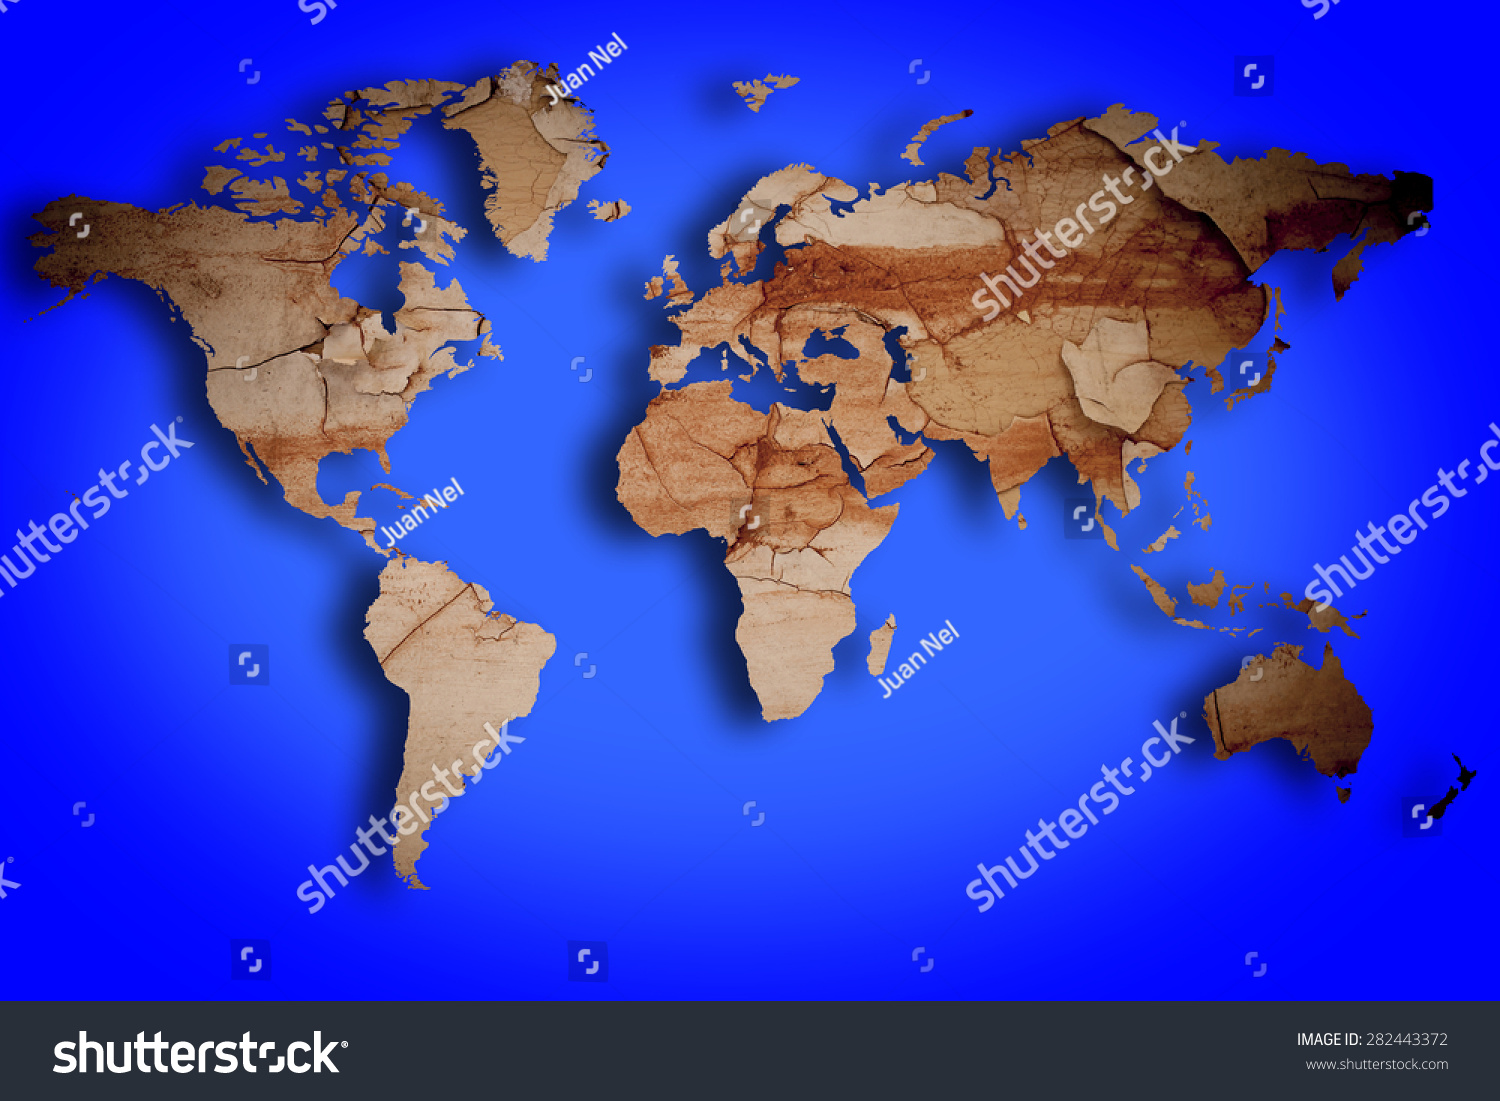 Grunge world map over blue background stock illustration 282443372 grunge world map over a blue background gumiabroncs Gallery